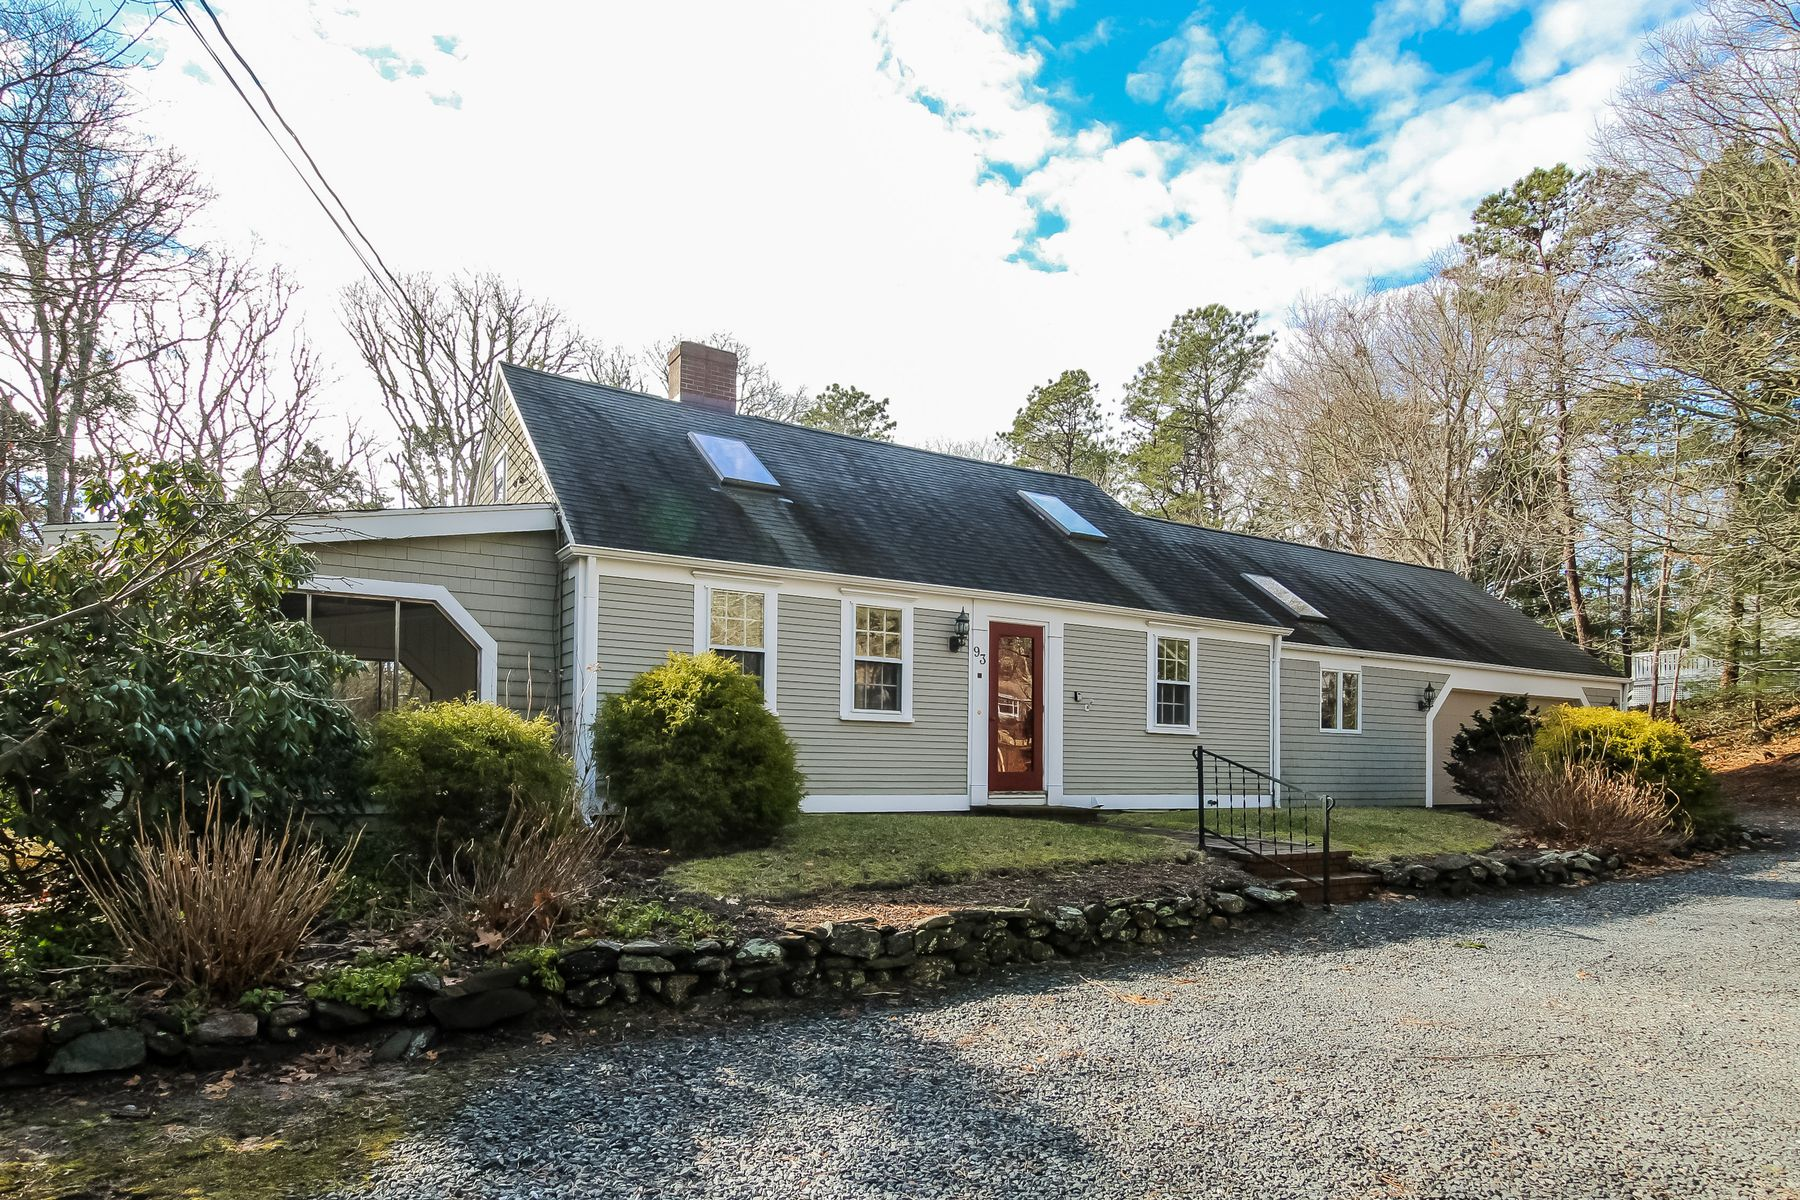 Single Family Home for Active at Classic Cotuit Cape 93 Shell Lane Cotuit, Massachusetts 02635 United States